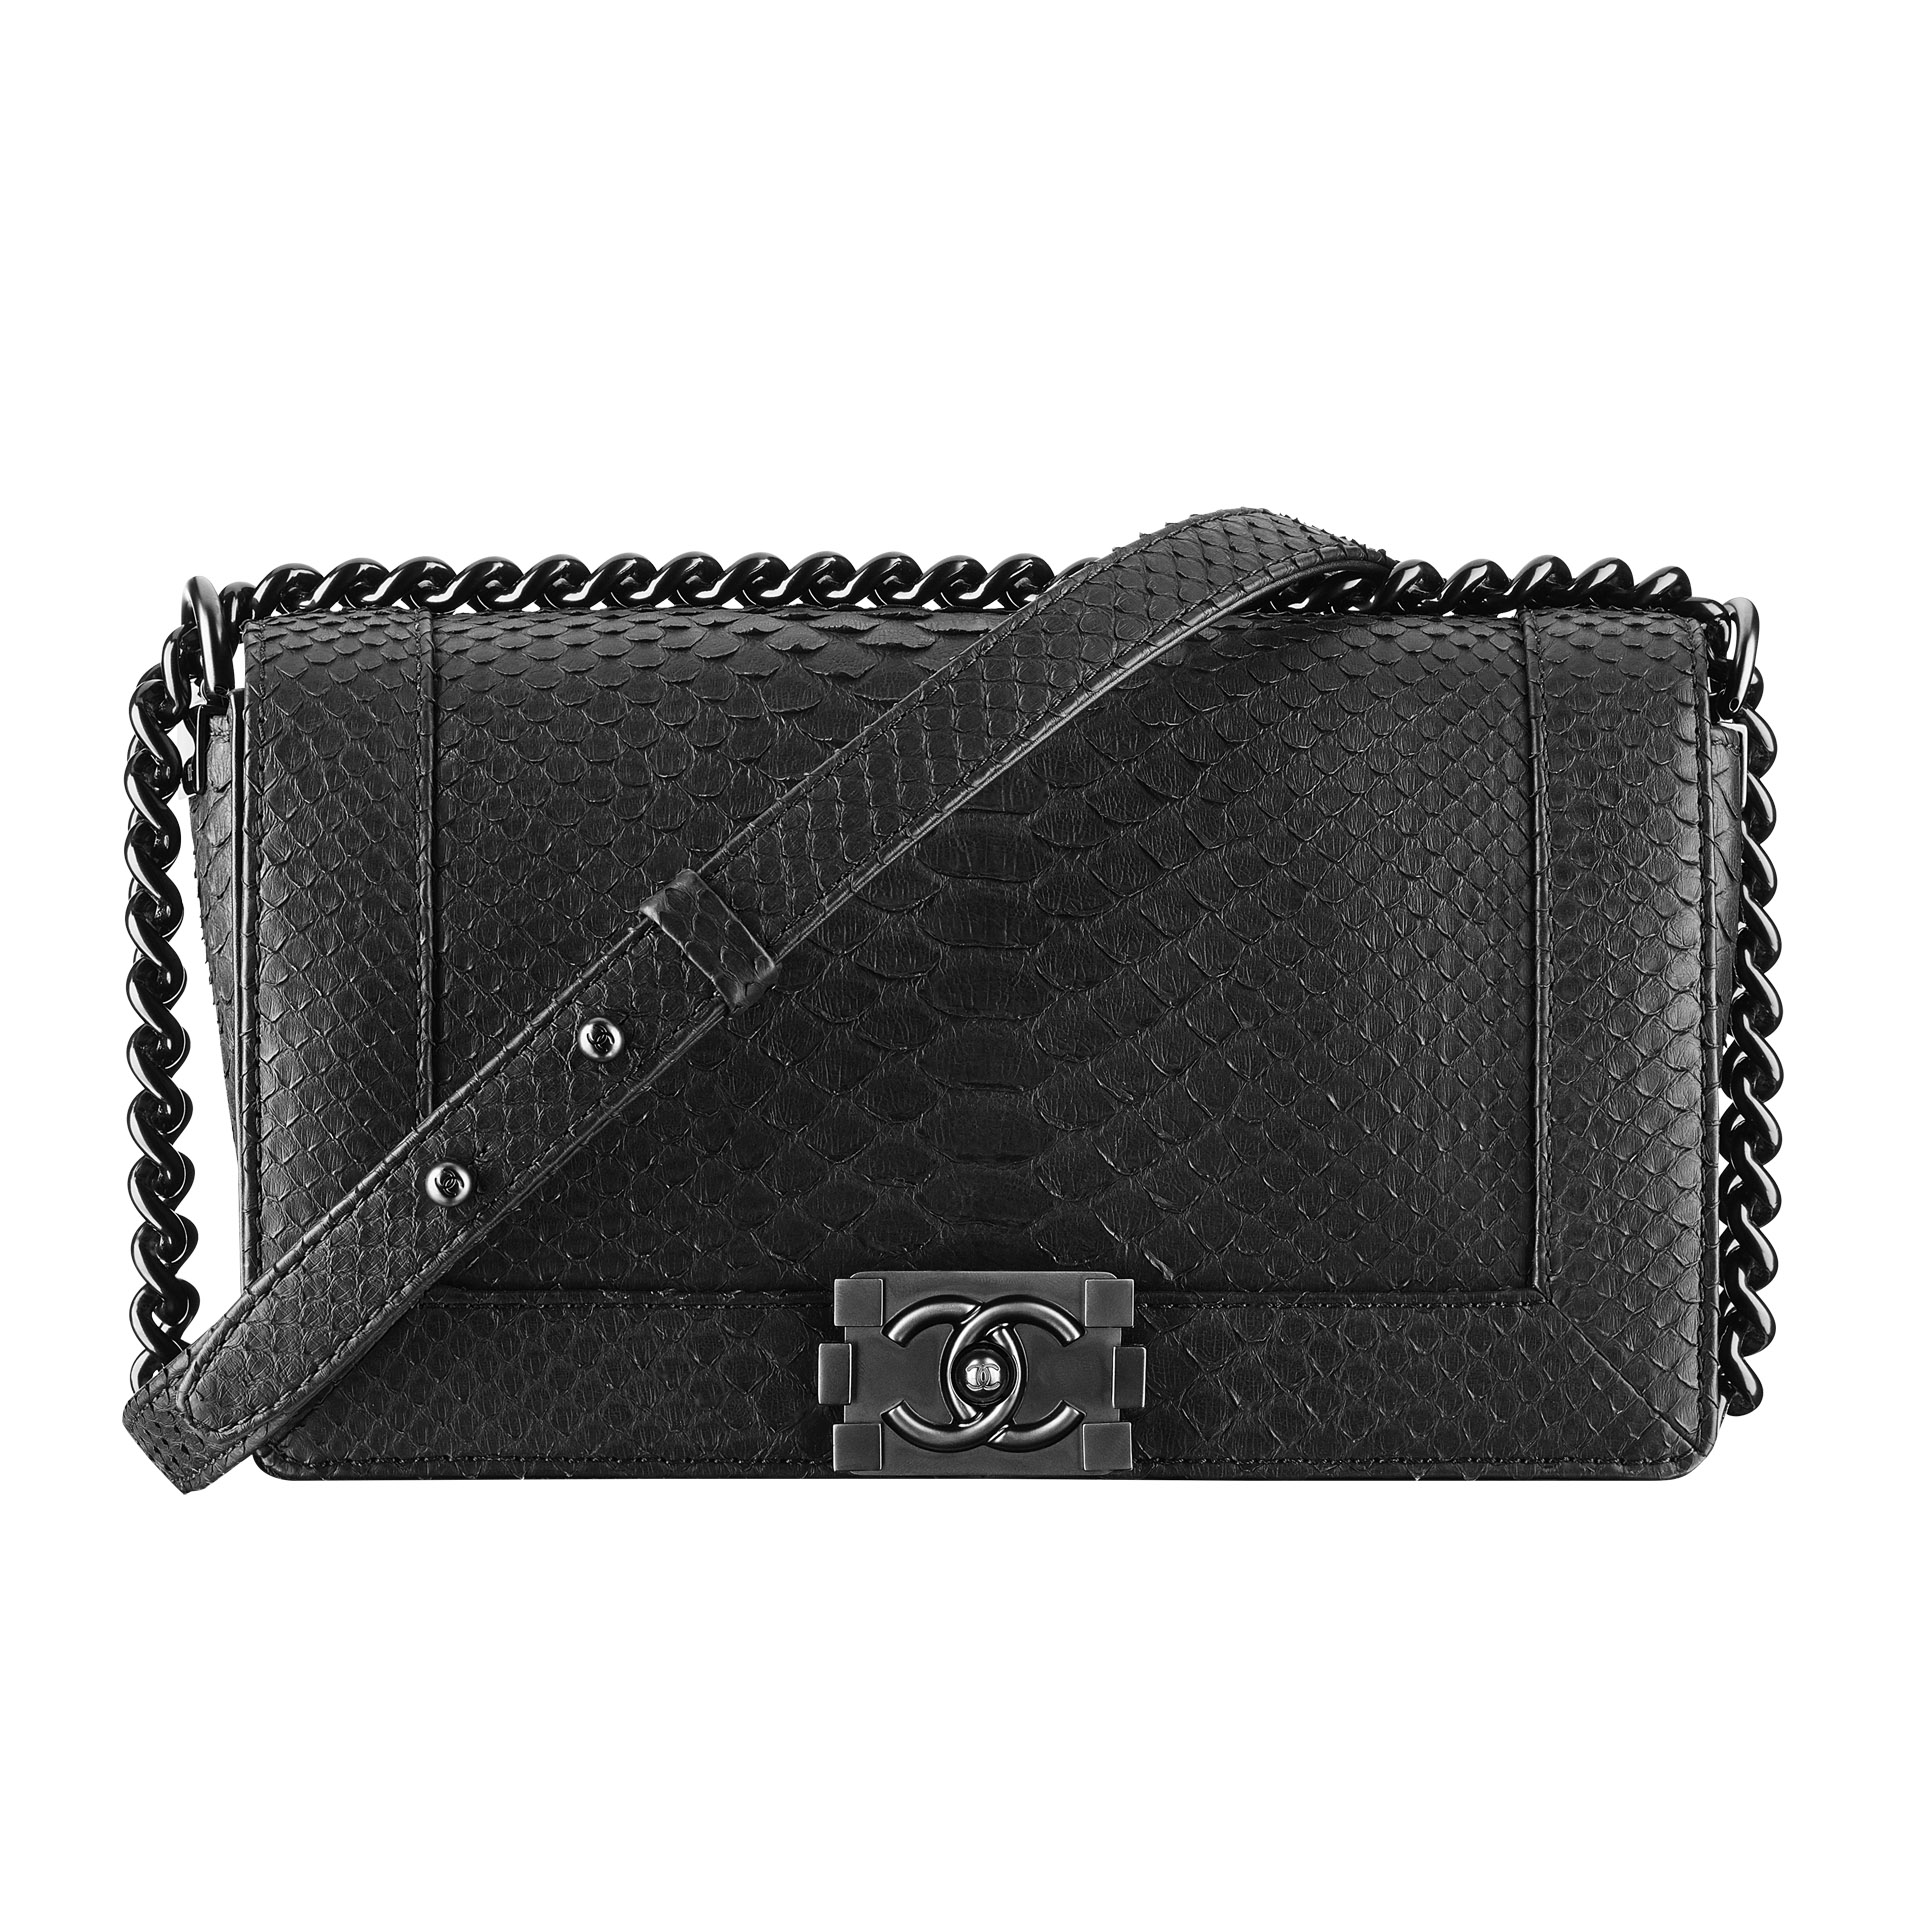 4 - Black-exotic-leather-BOY-CHANEL-bag